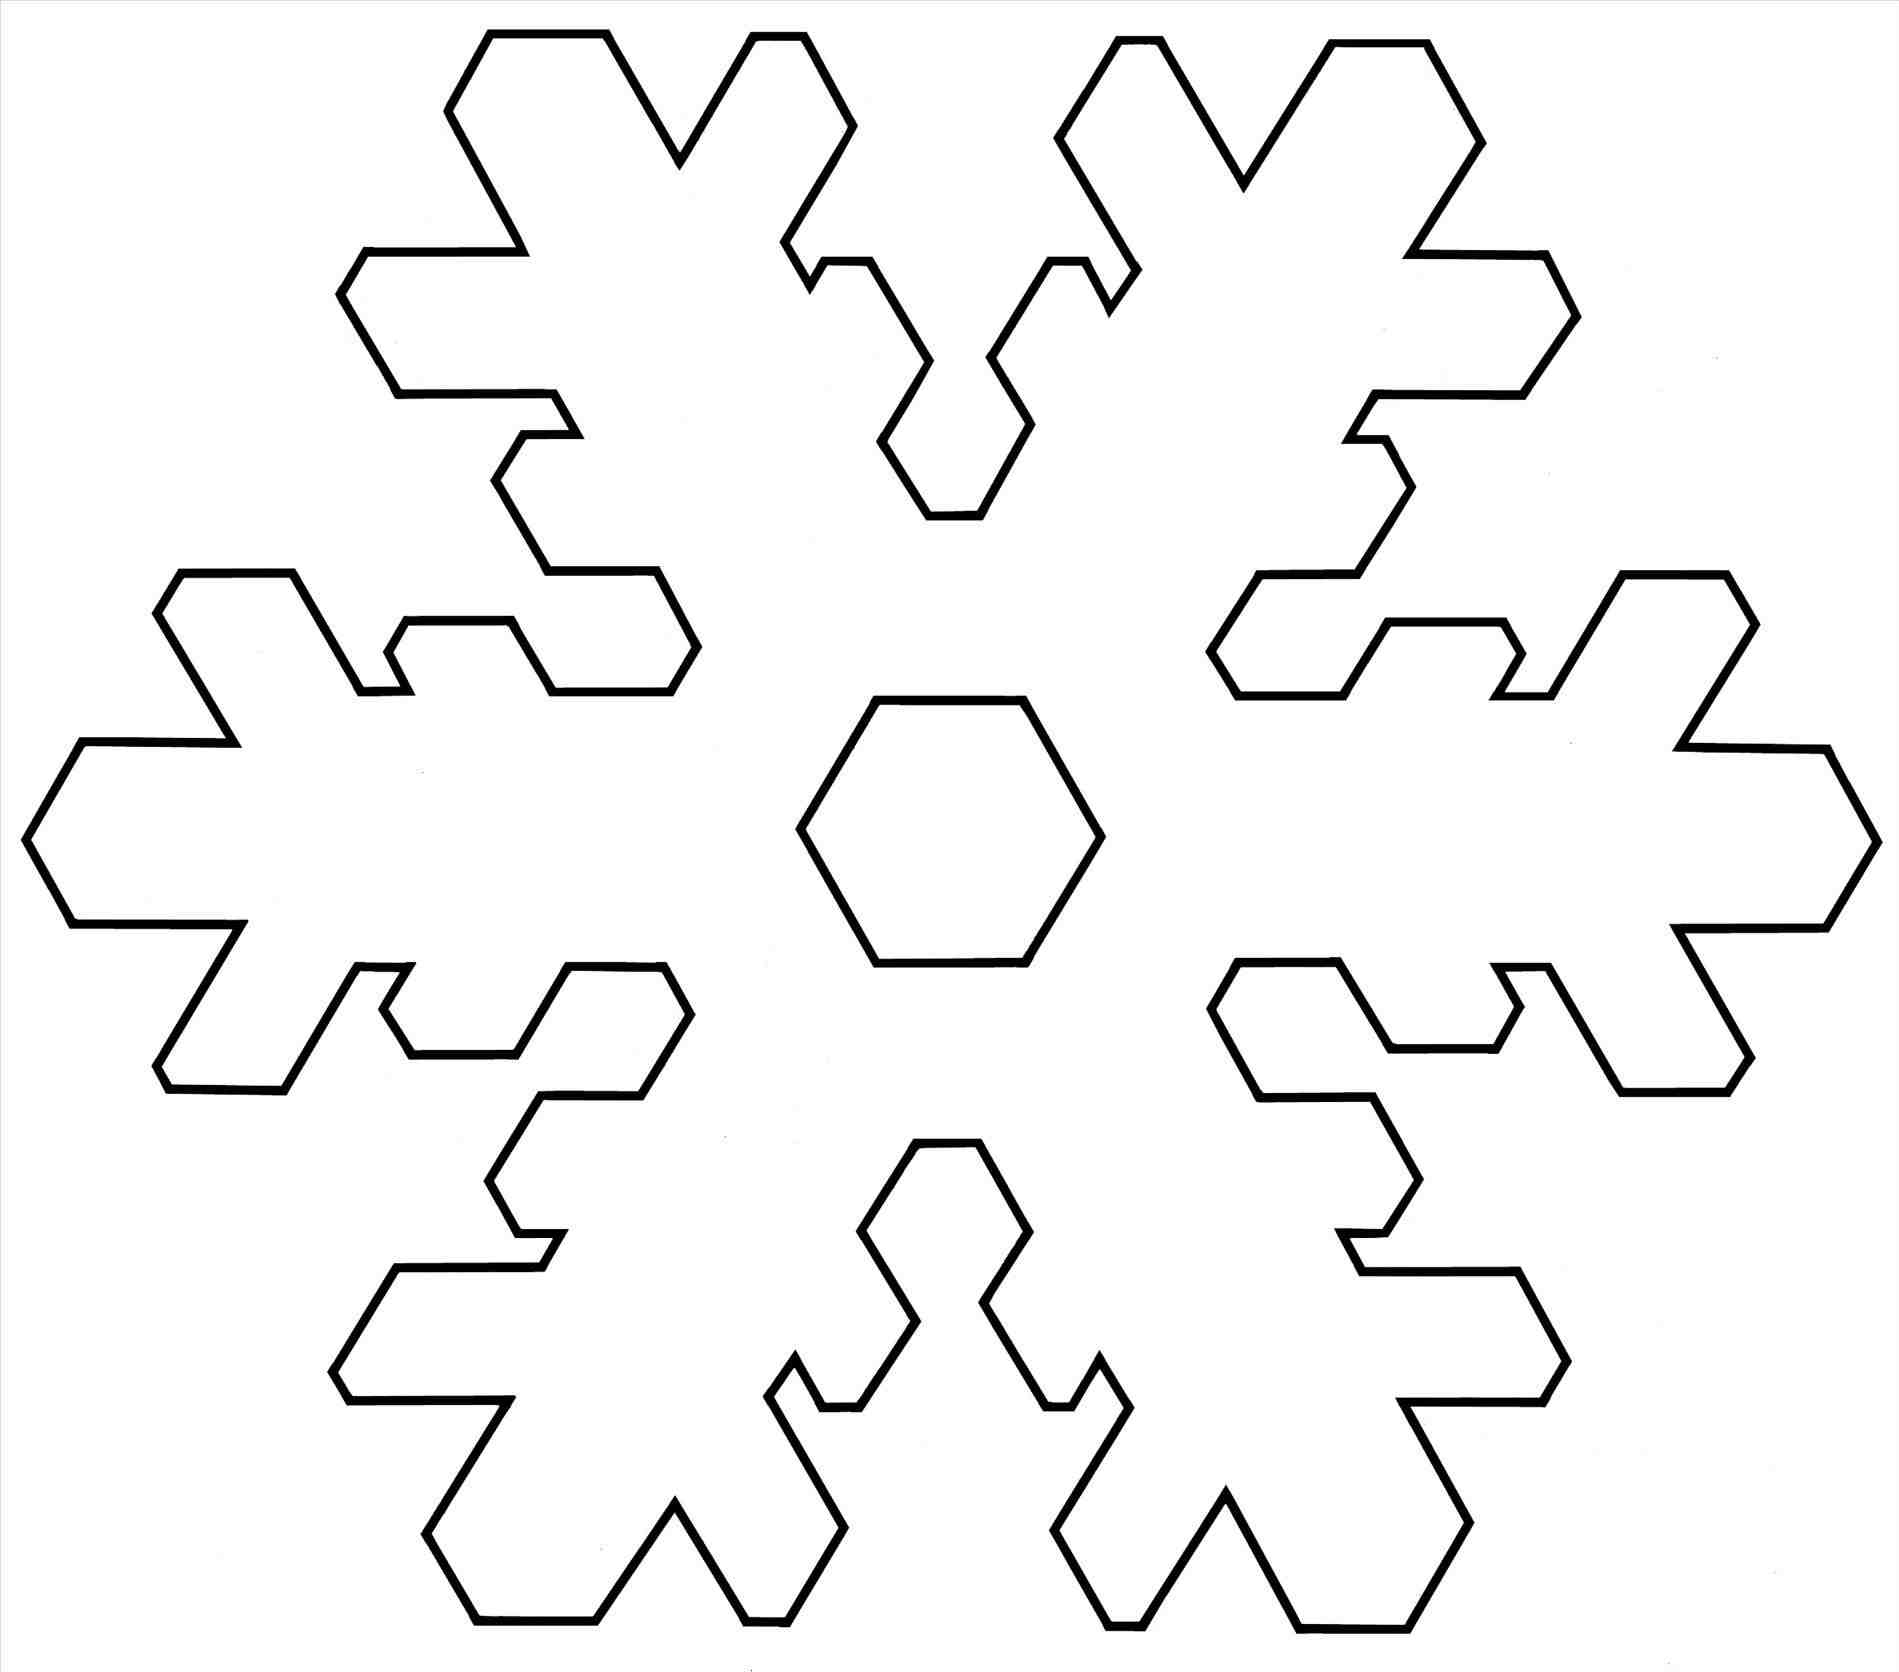 Template-Design-Templates-Insssrenterprisesco-Free-Printable-Google - Free Printable Snowflake Patterns